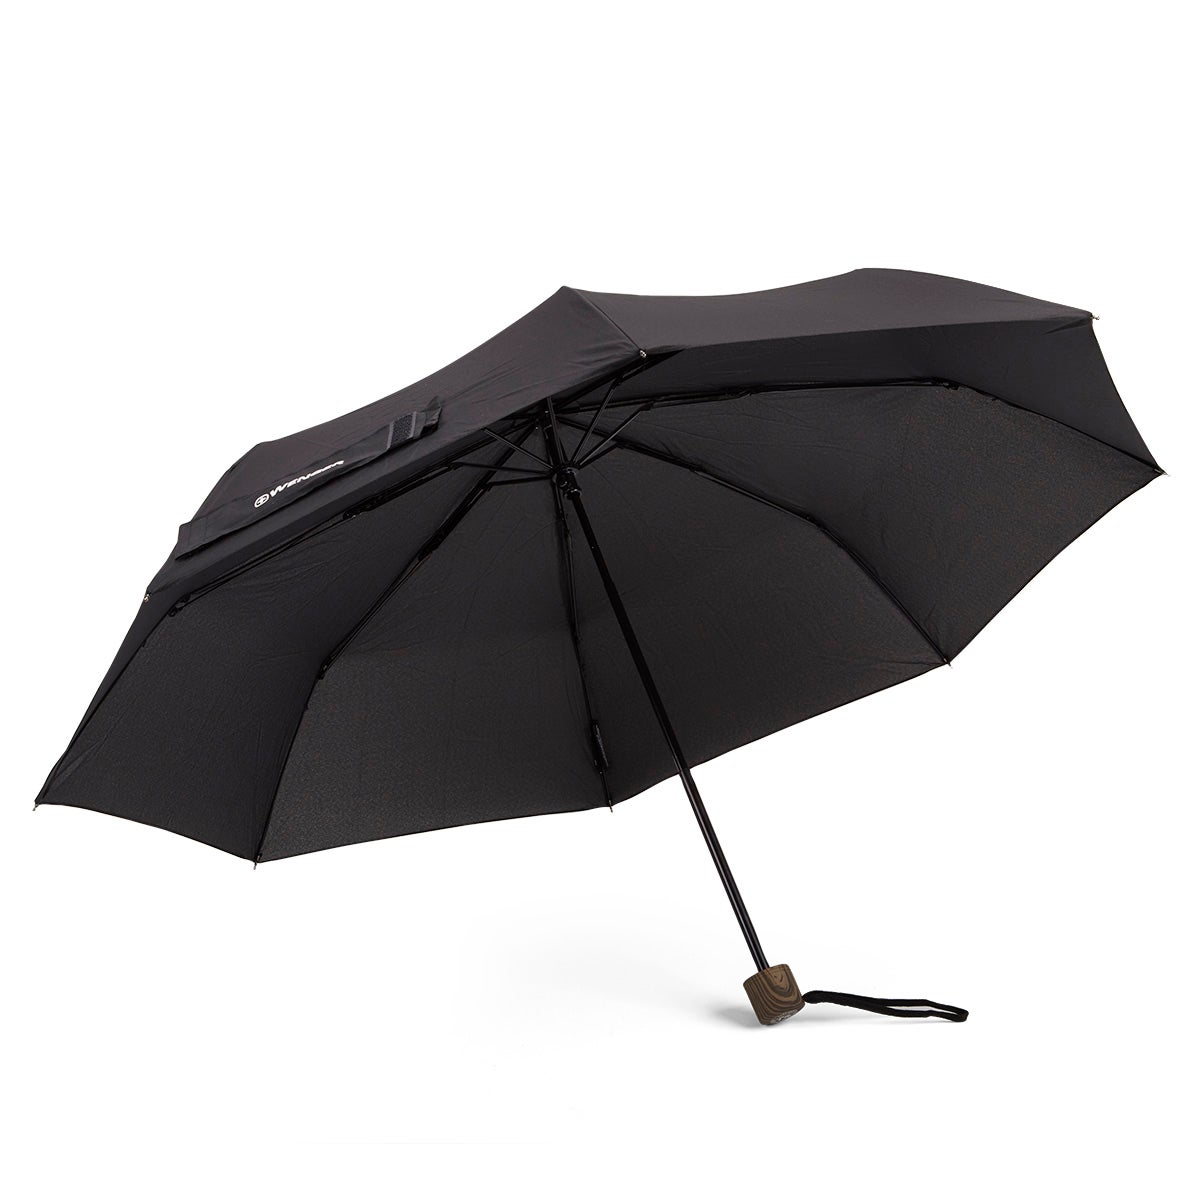 Wenger by Swiss Gear telescopic umbrella